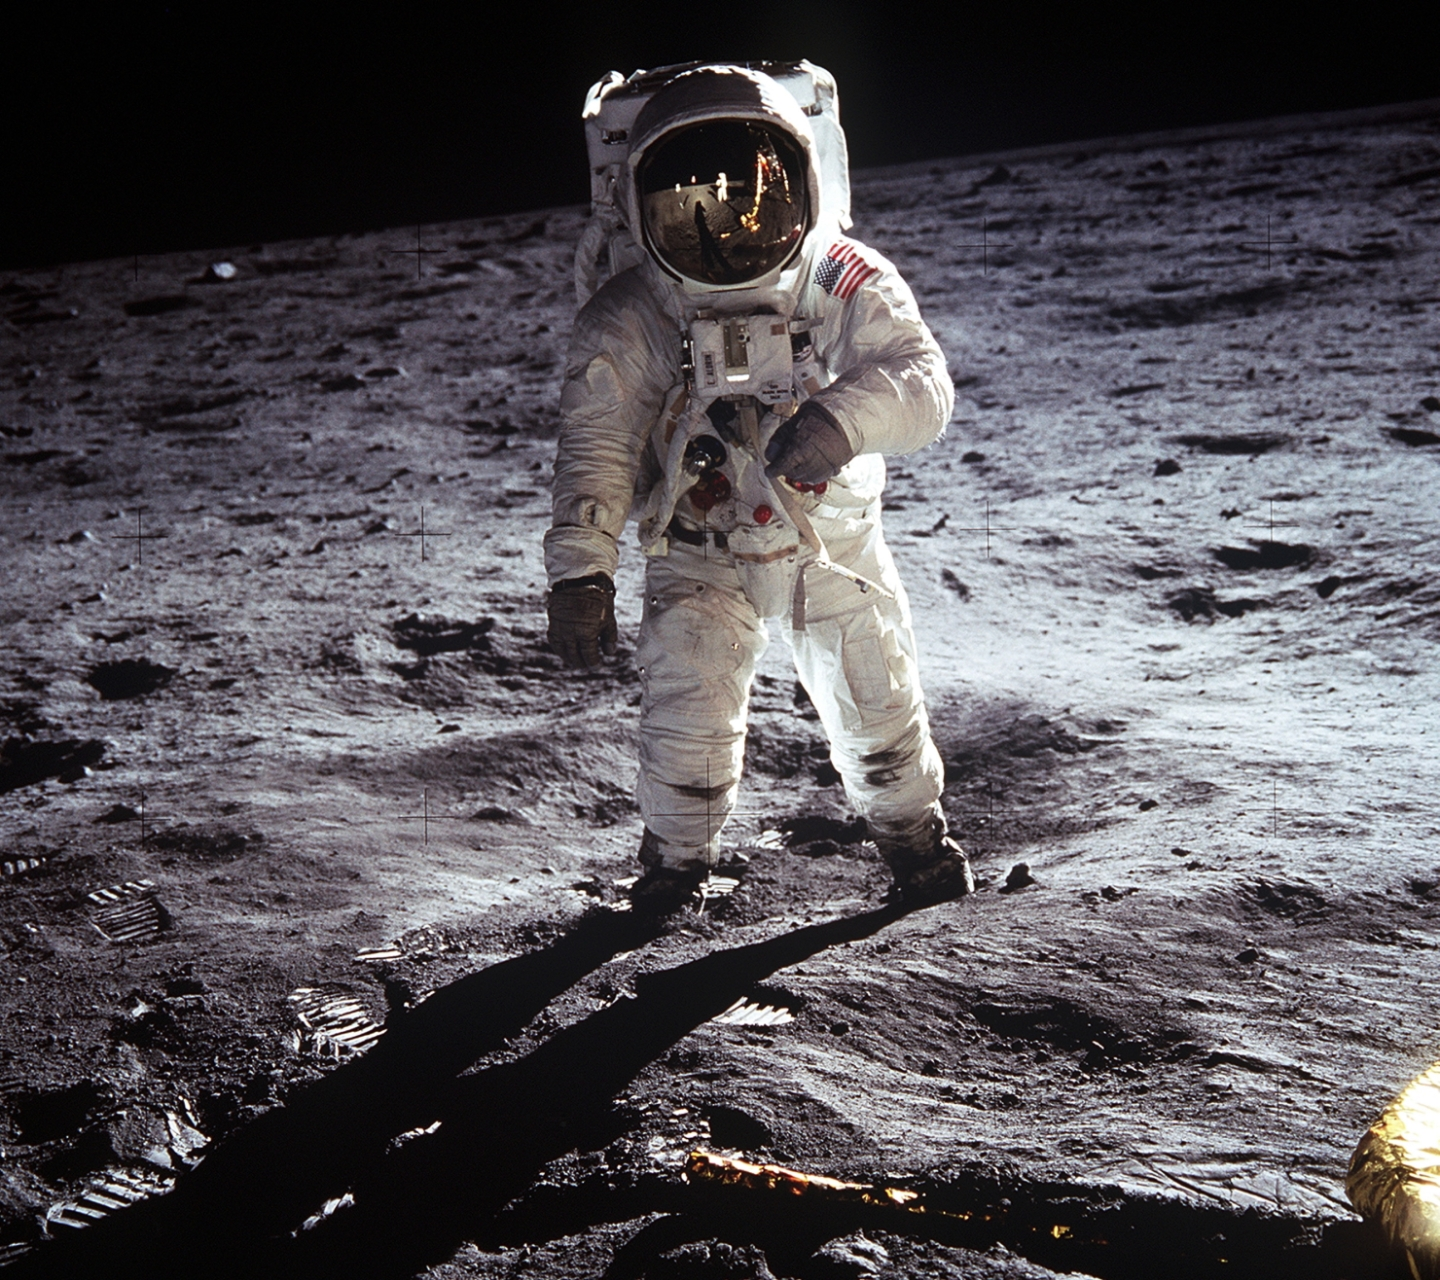 The astronaut on the moon's surface